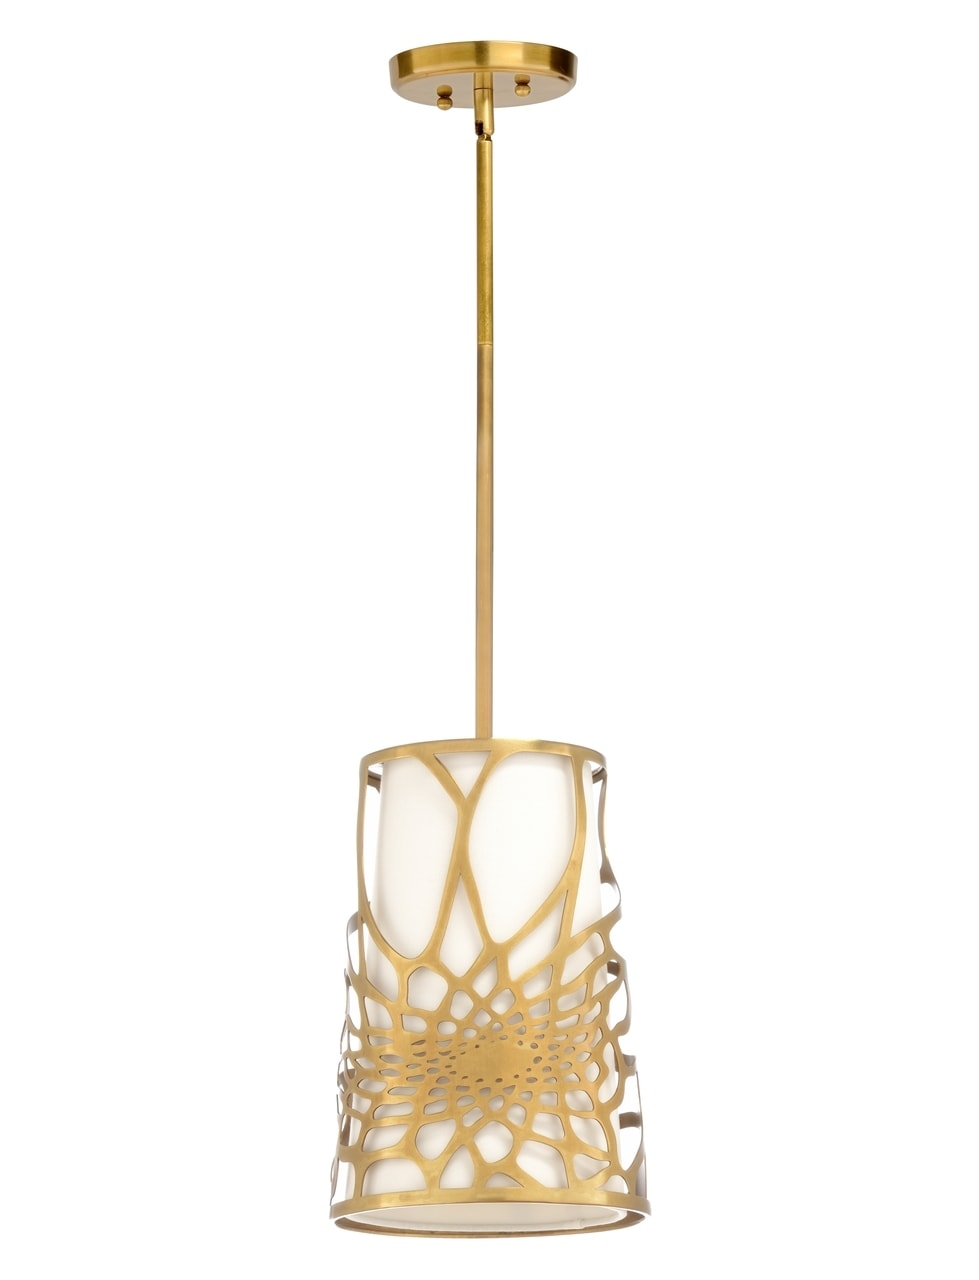 products-aria-brass-pendant-67155__18728.1510407065.1280.1280